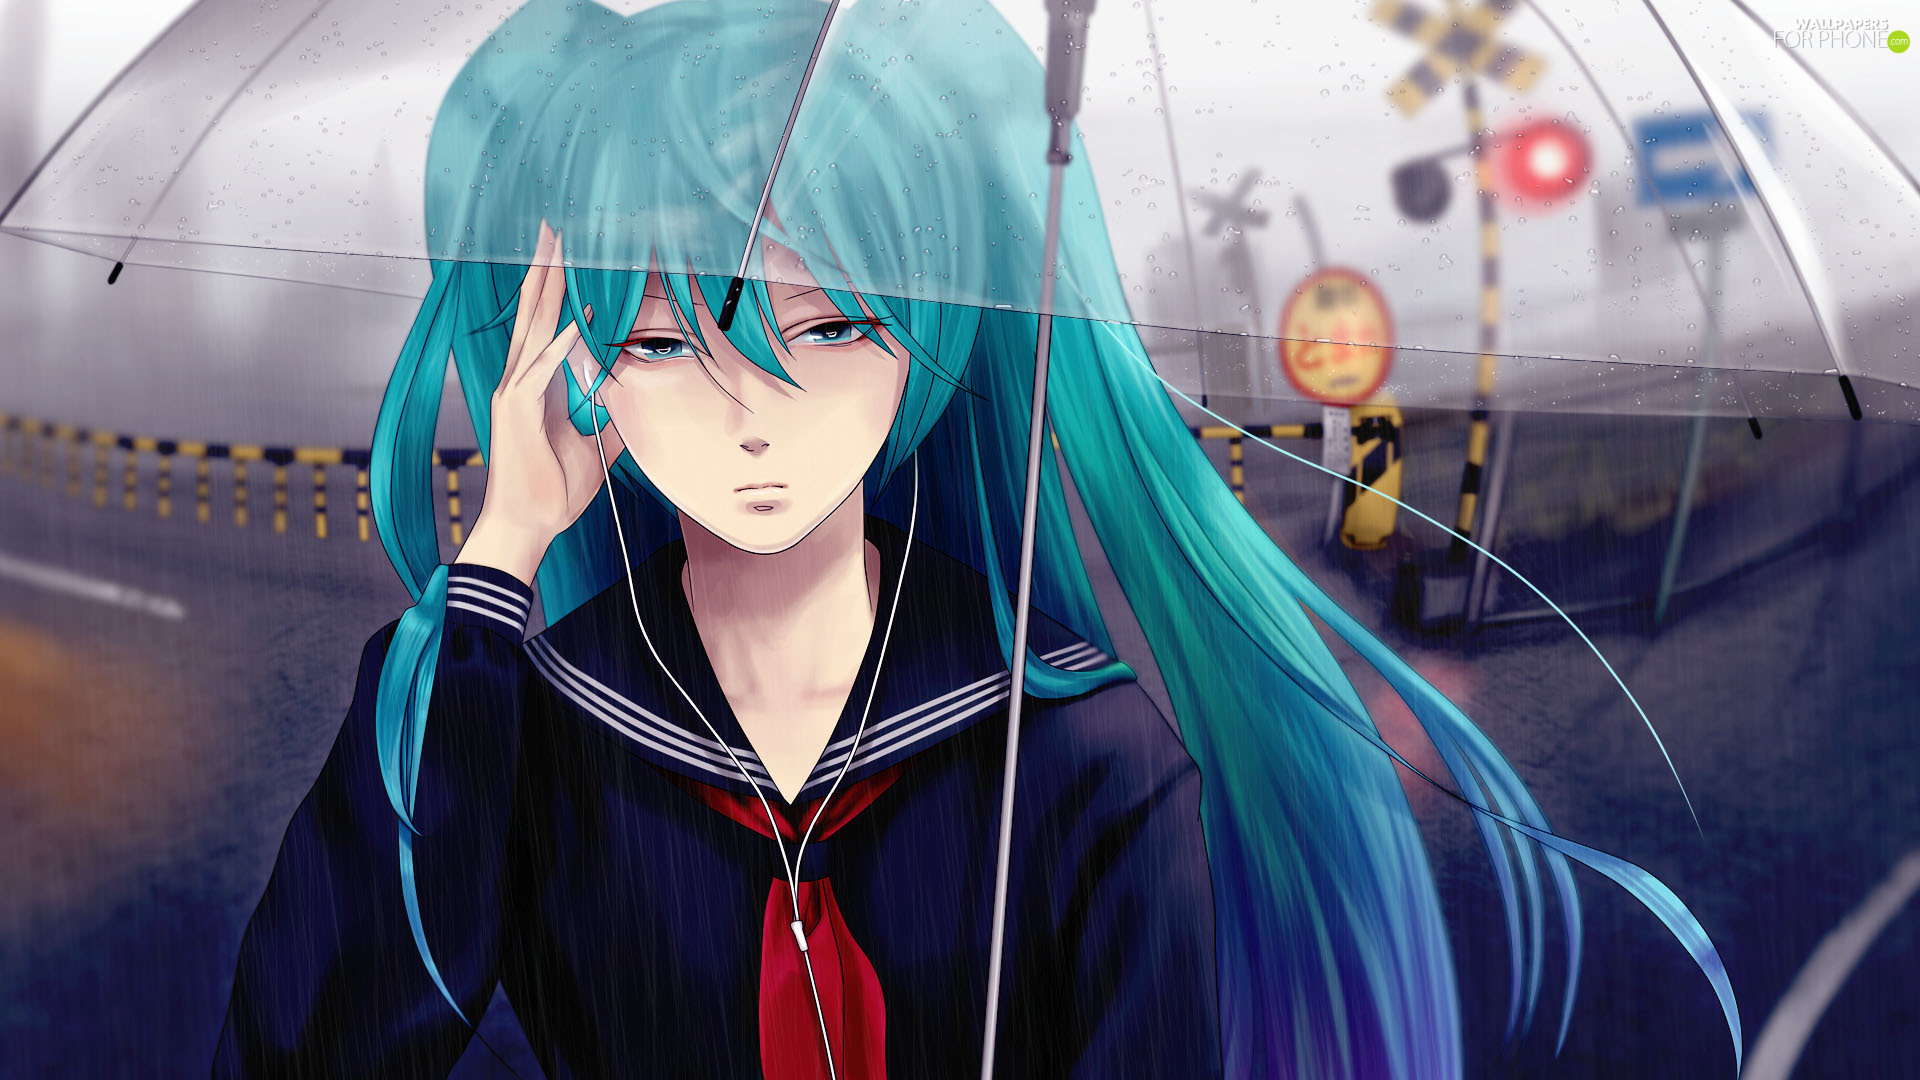 way, railway, Hatsune Miku, Umbrella, Vocaloid